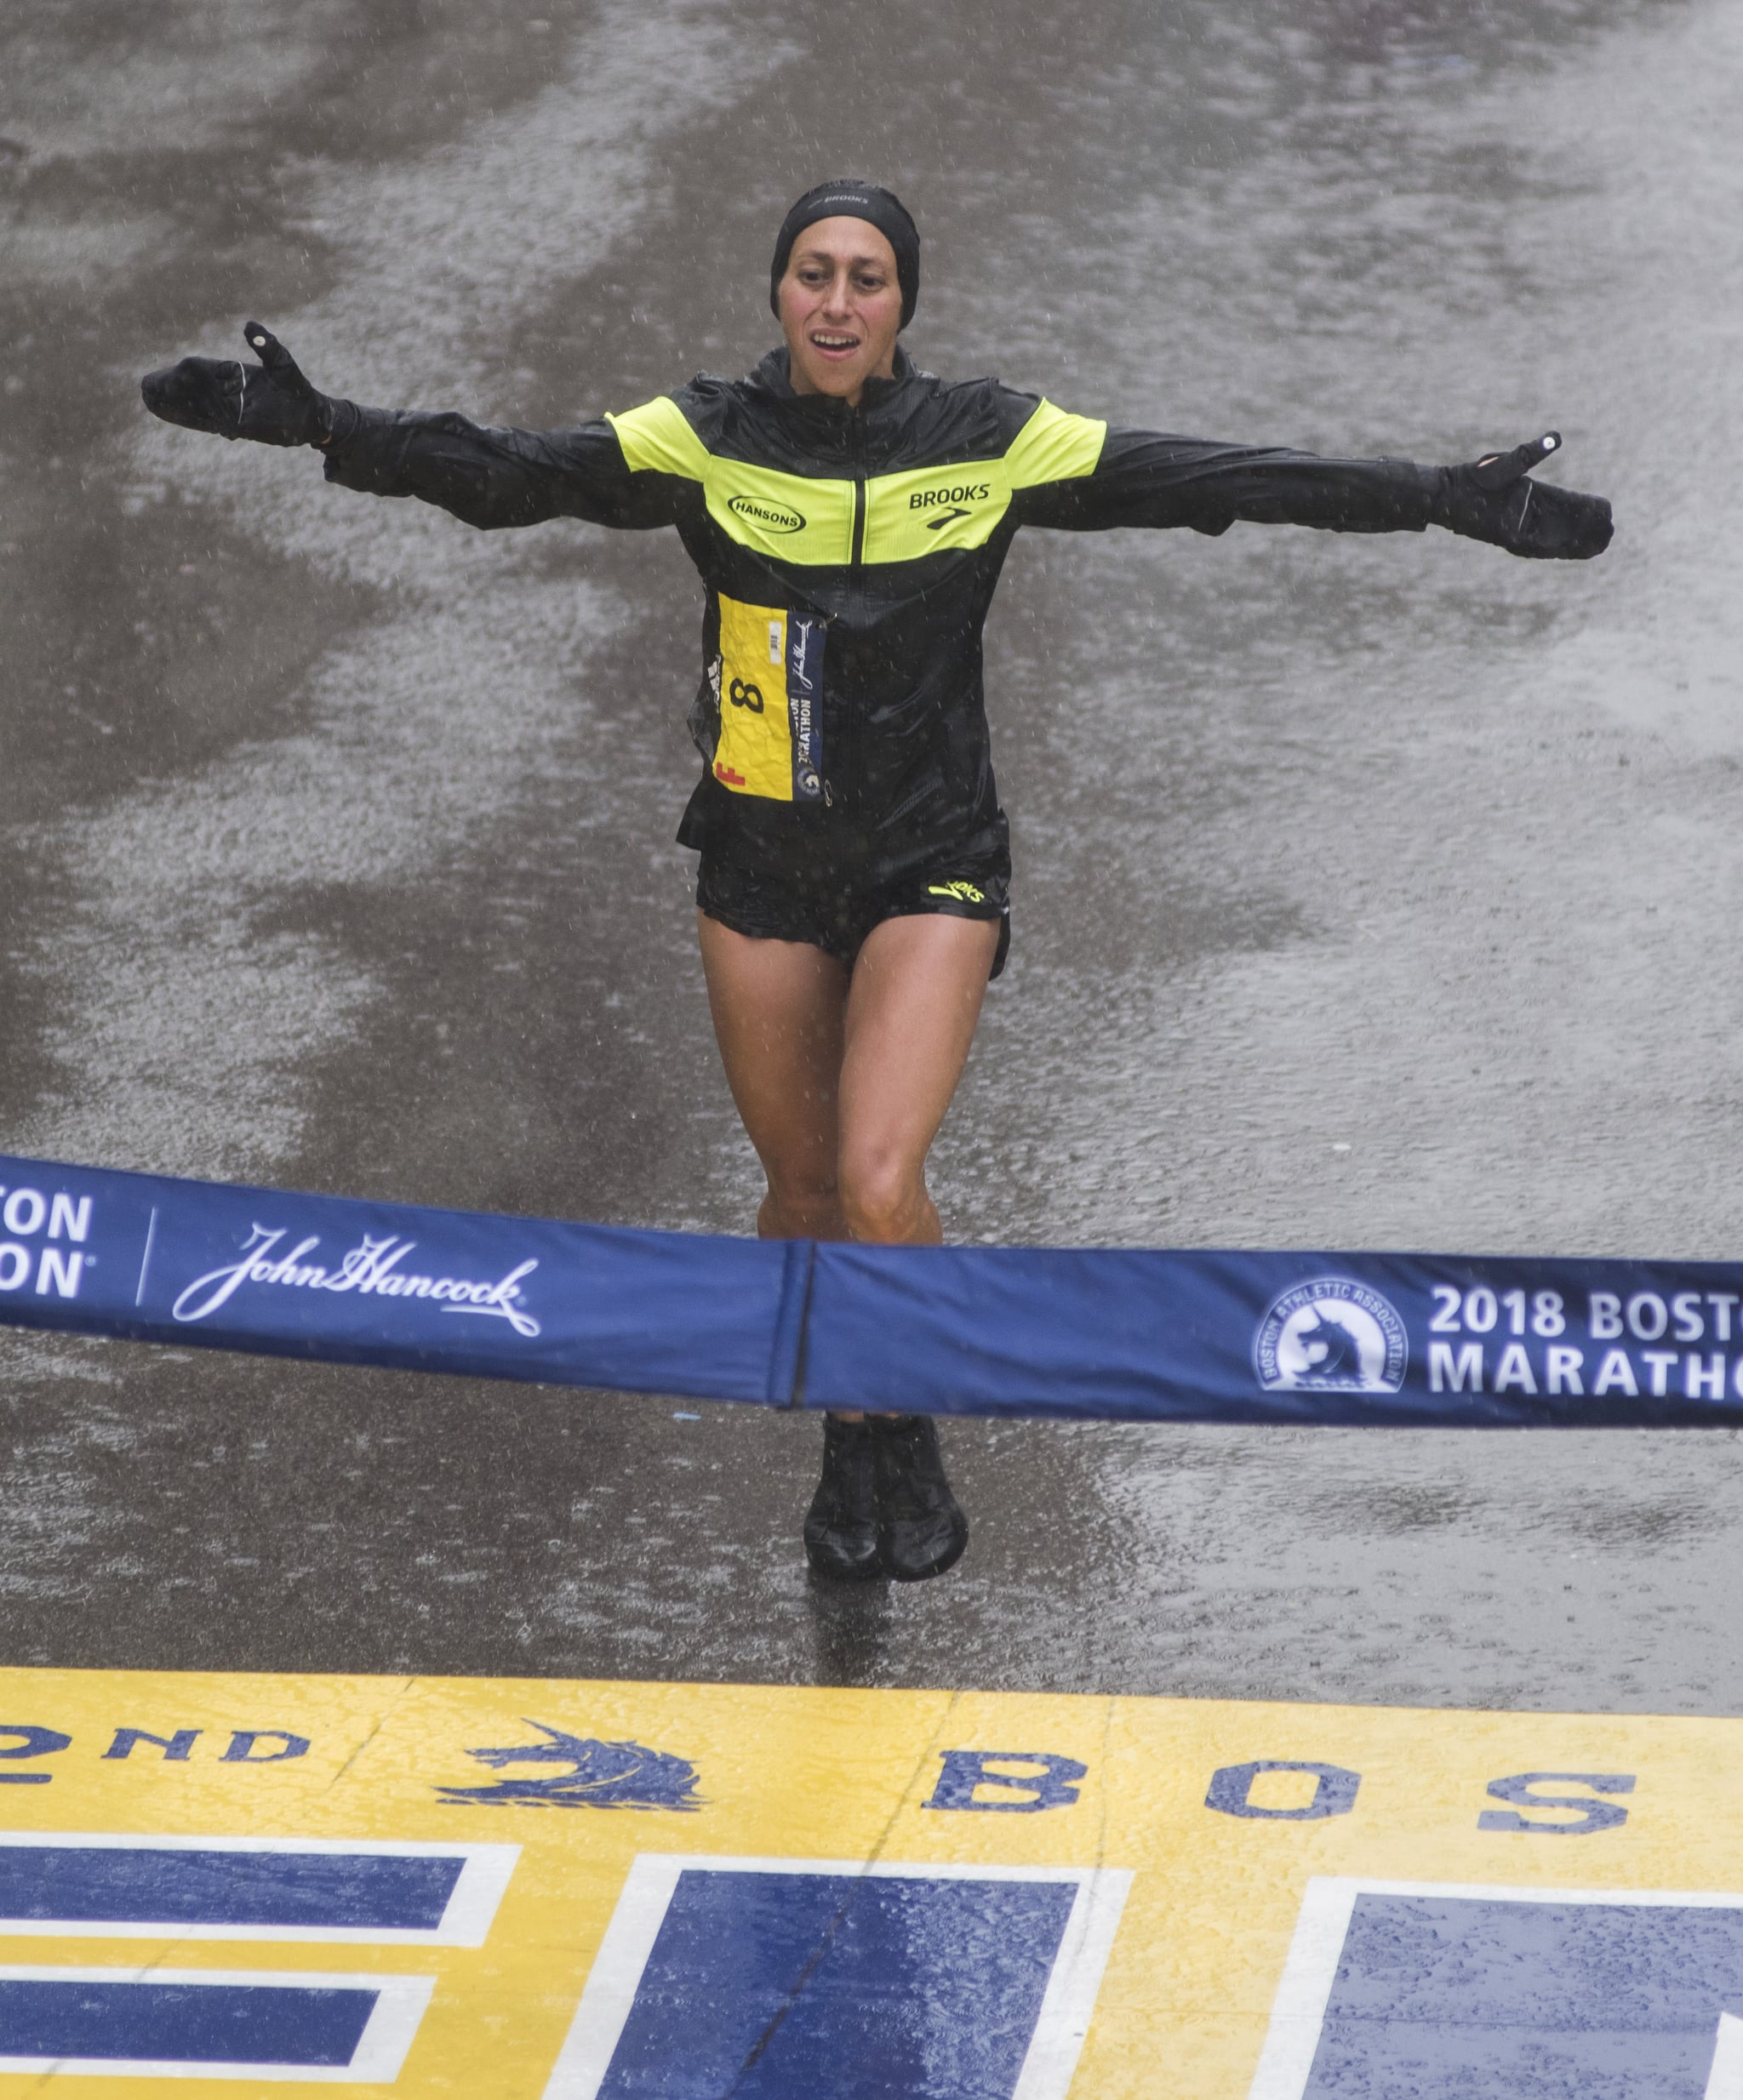 Desiree Linden of the United States crosses the finish line as the winner of the 2018 and 122nd Boston Marathon for Elite Women's race with a time of 2:39:54 on April 16, 2018 in Boston, Massachusetts. Her personal best finish was previously second place in the Boston Marathon in 2011 with a time of 2:22:38. / AFP PHOTO / RYAN MCBRIDE        (Photo credit should read RYAN MCBRIDE/AFP/Getty Images)